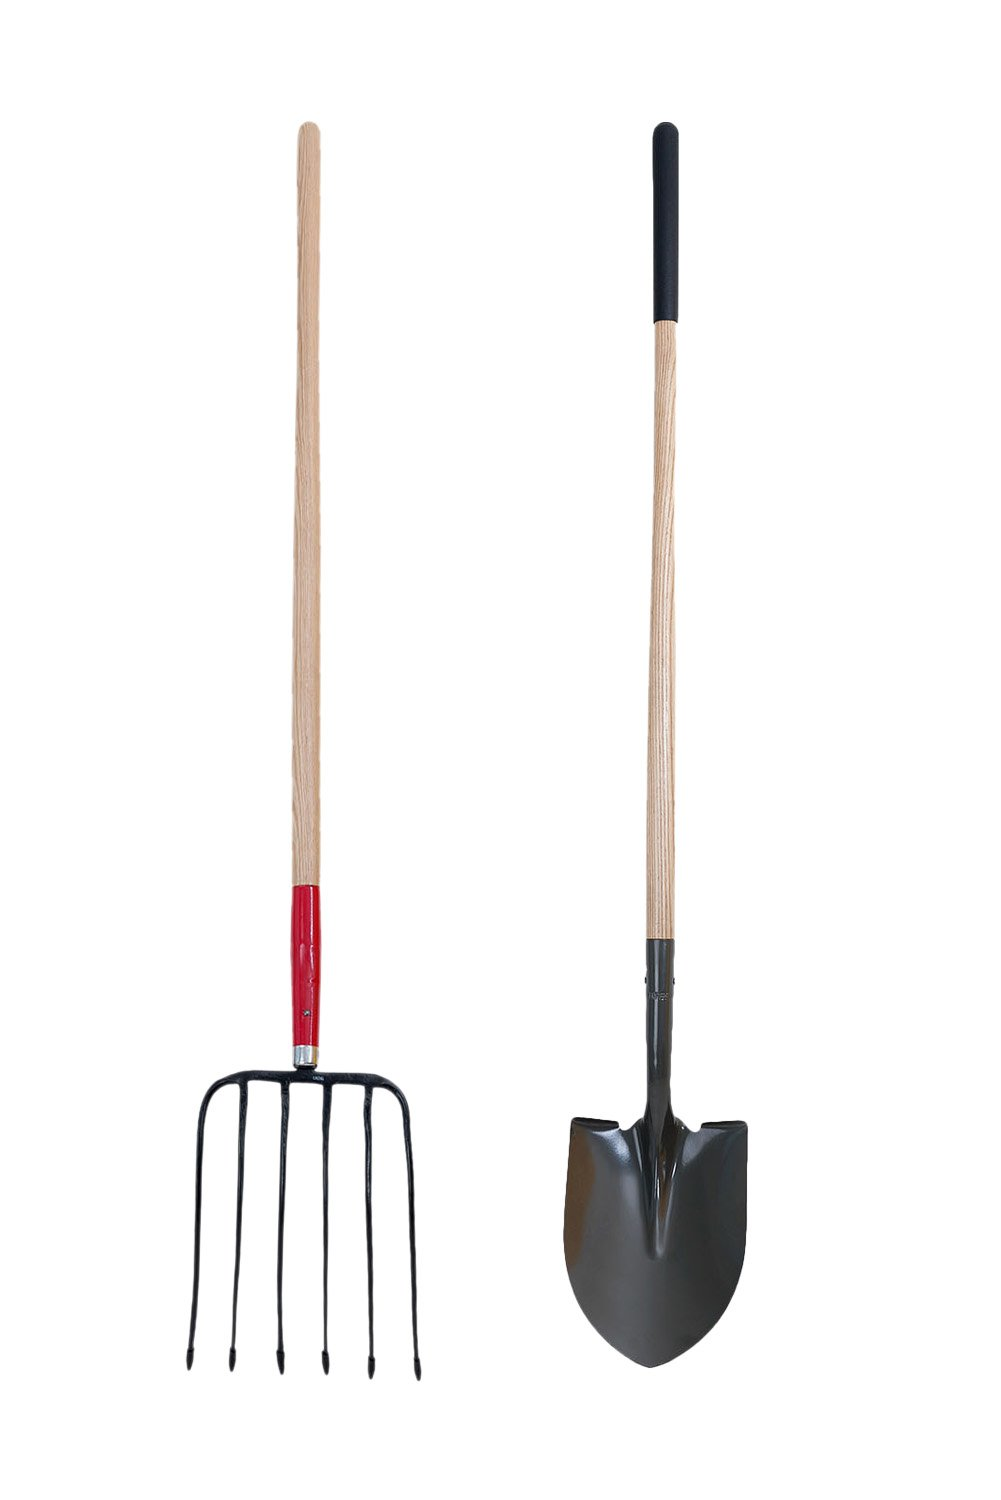 best garden fork - Forged Barley Fork Manure Fork and Round Point Shovel With Wood Handle -Super Sales